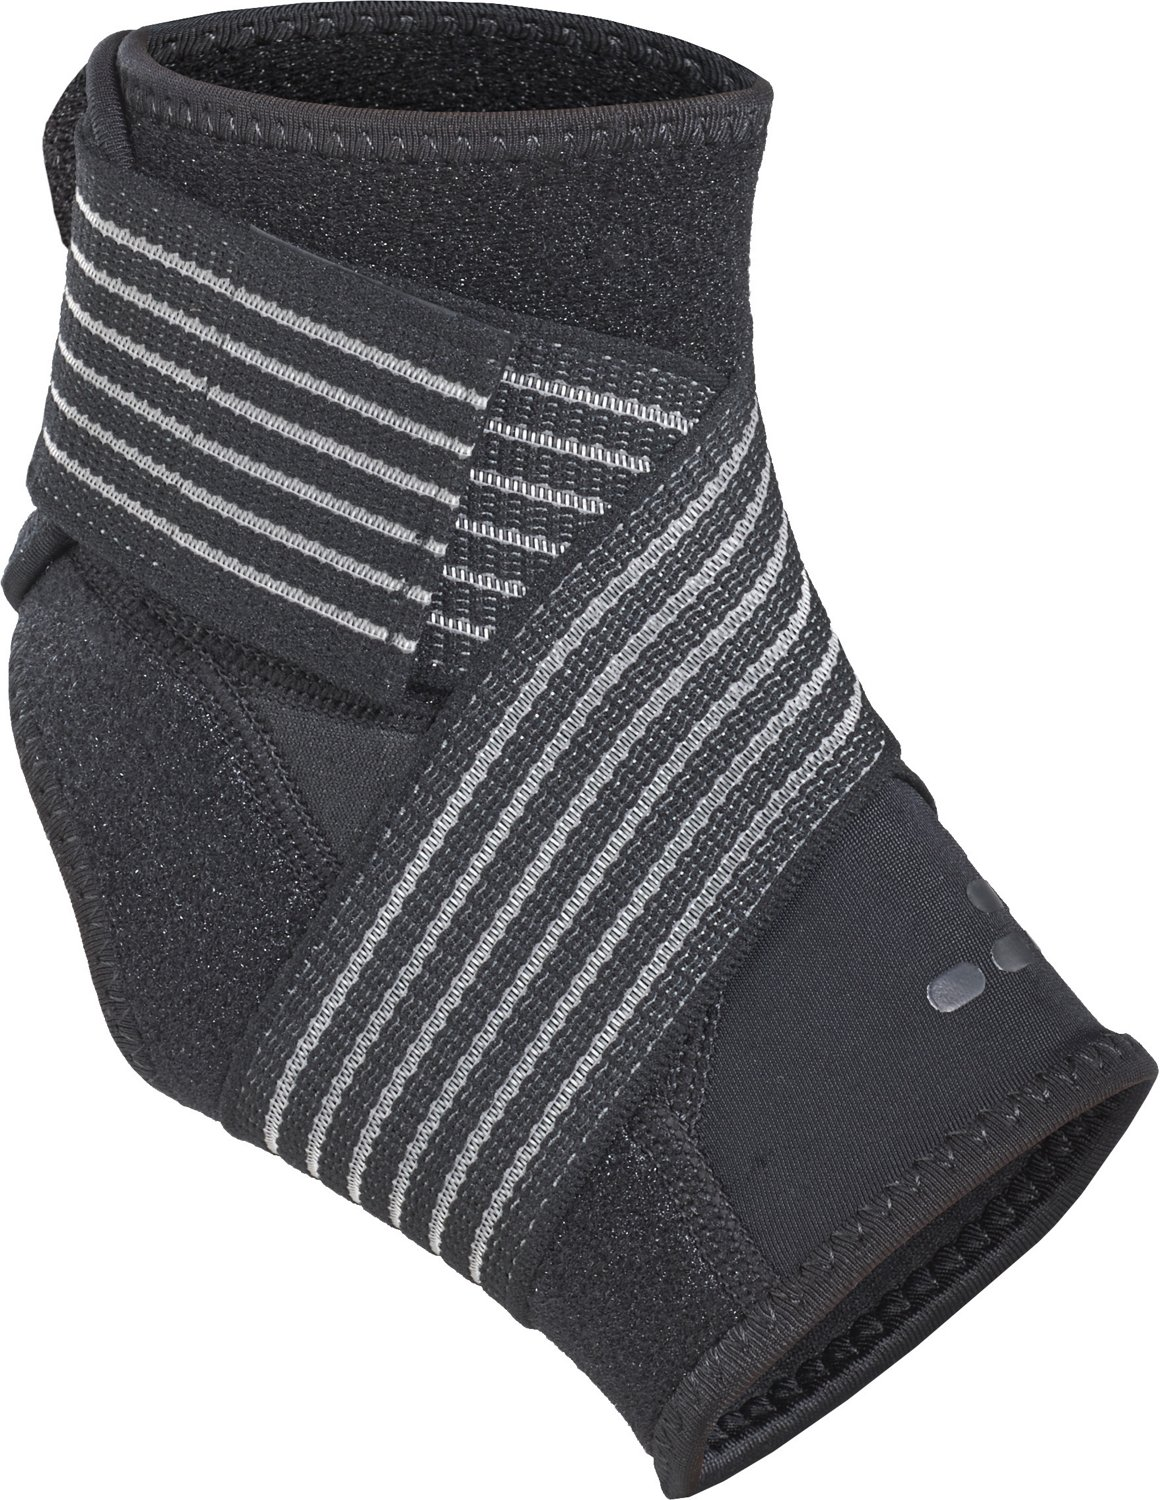 BCG Adjustable Ankle Support